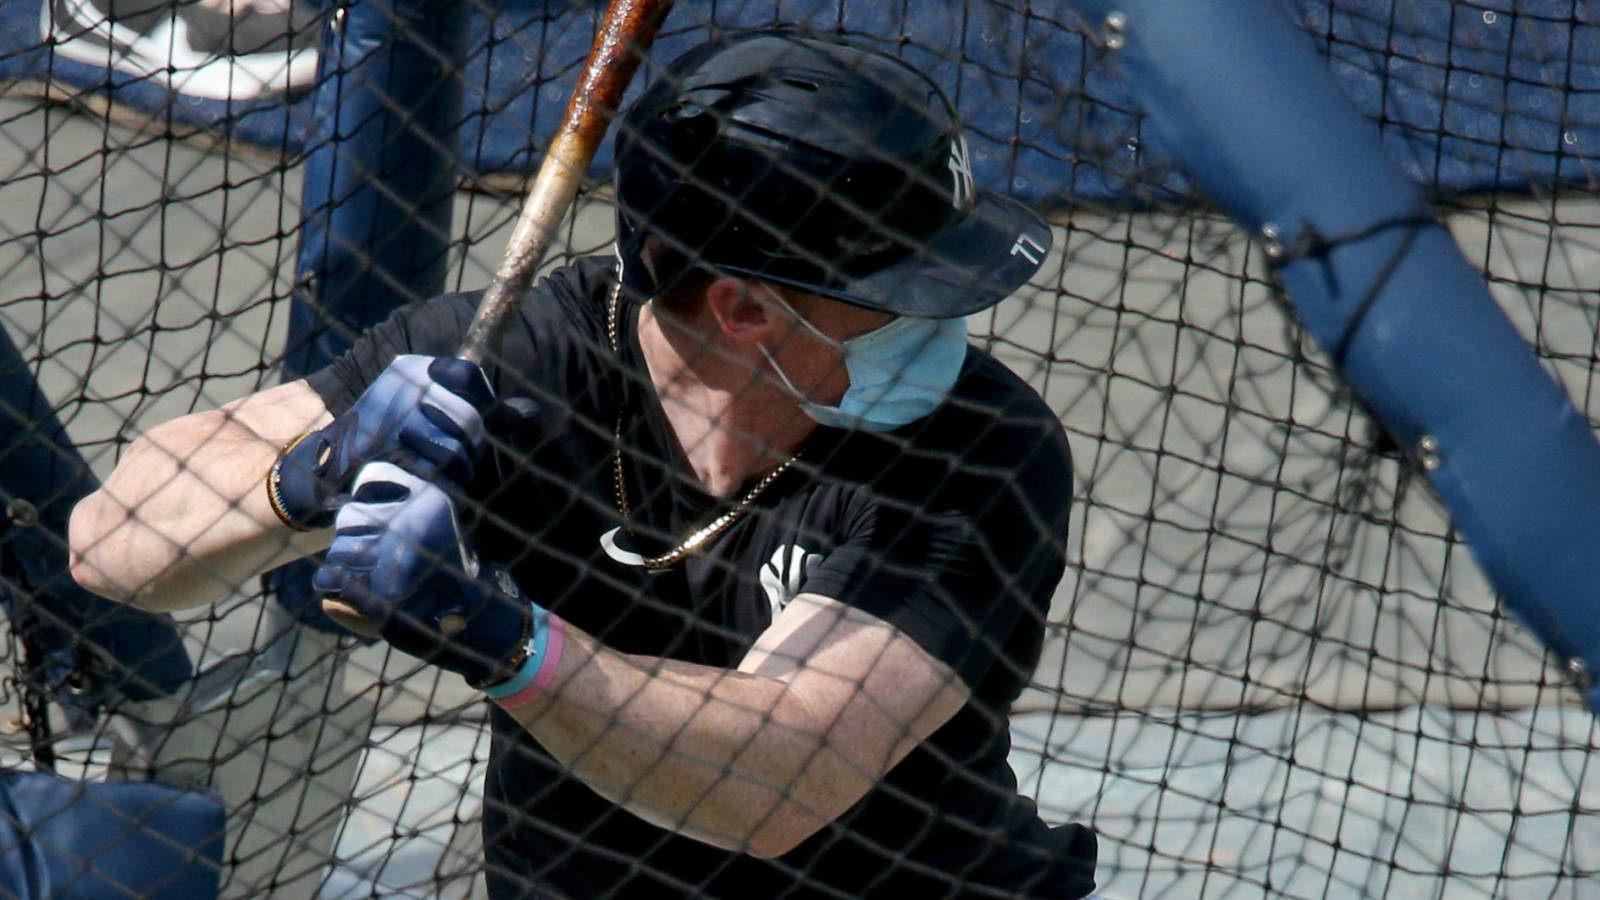 Yankees' Clint Frazier may wear mask during games